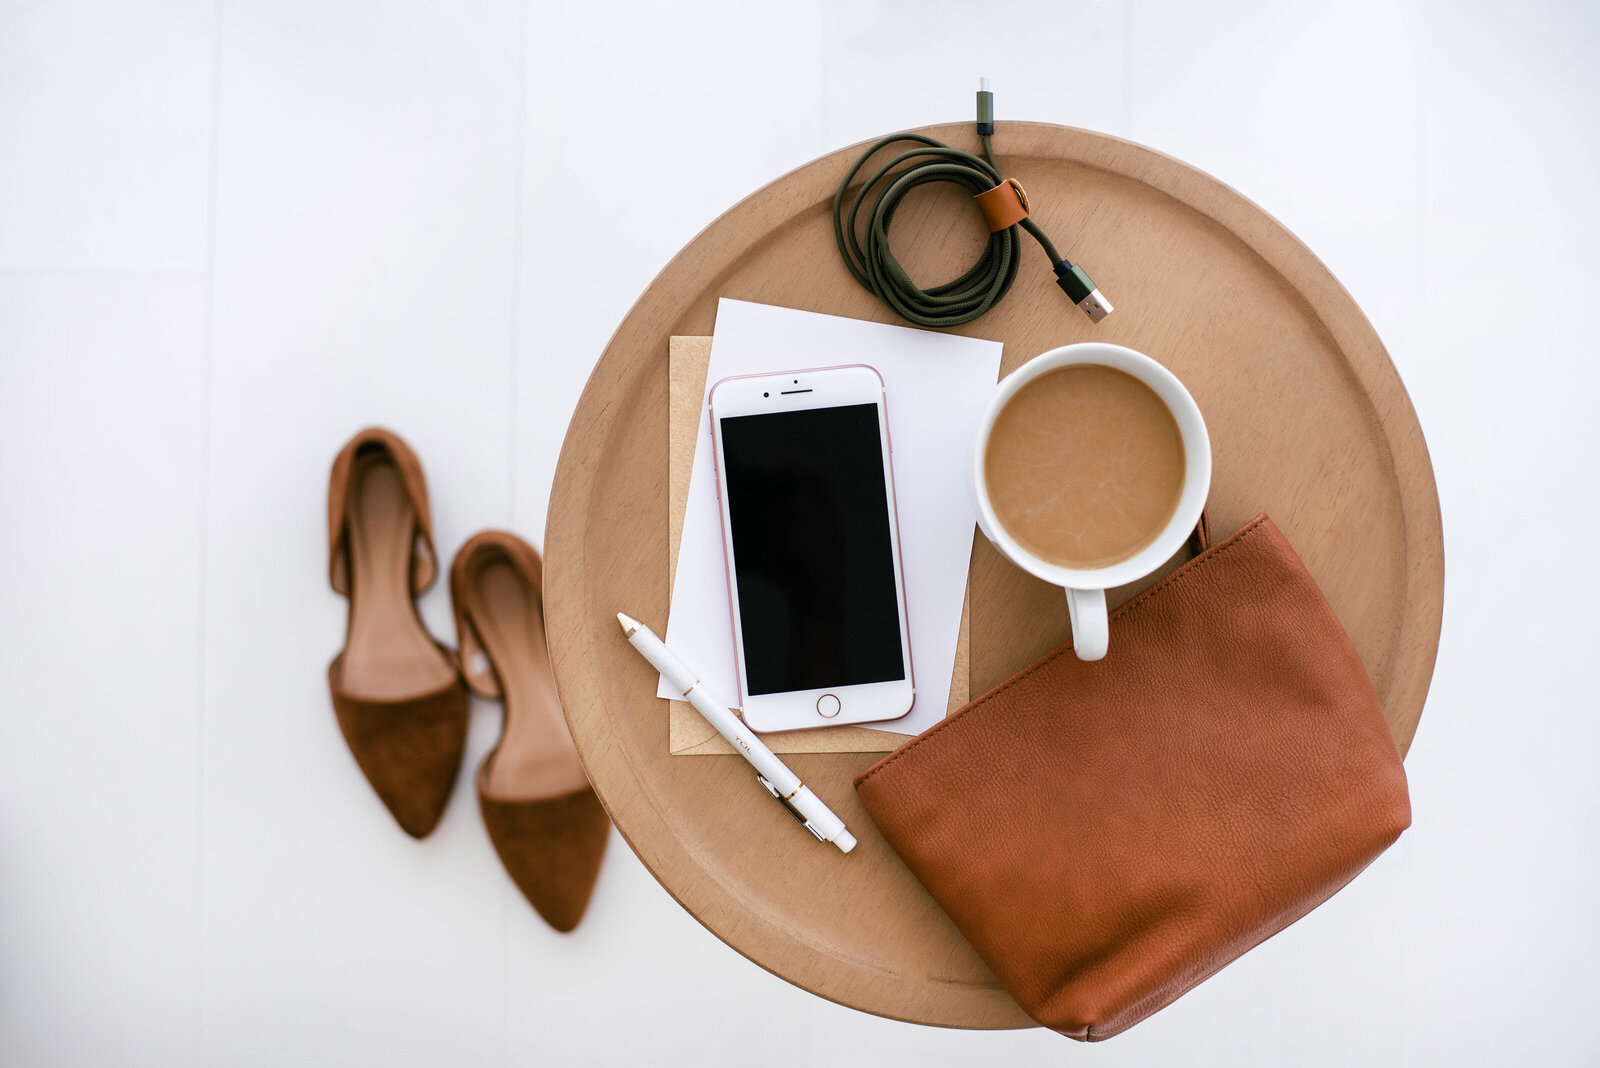 small business owner workspace with phone, keys, coffee, wallet and purse